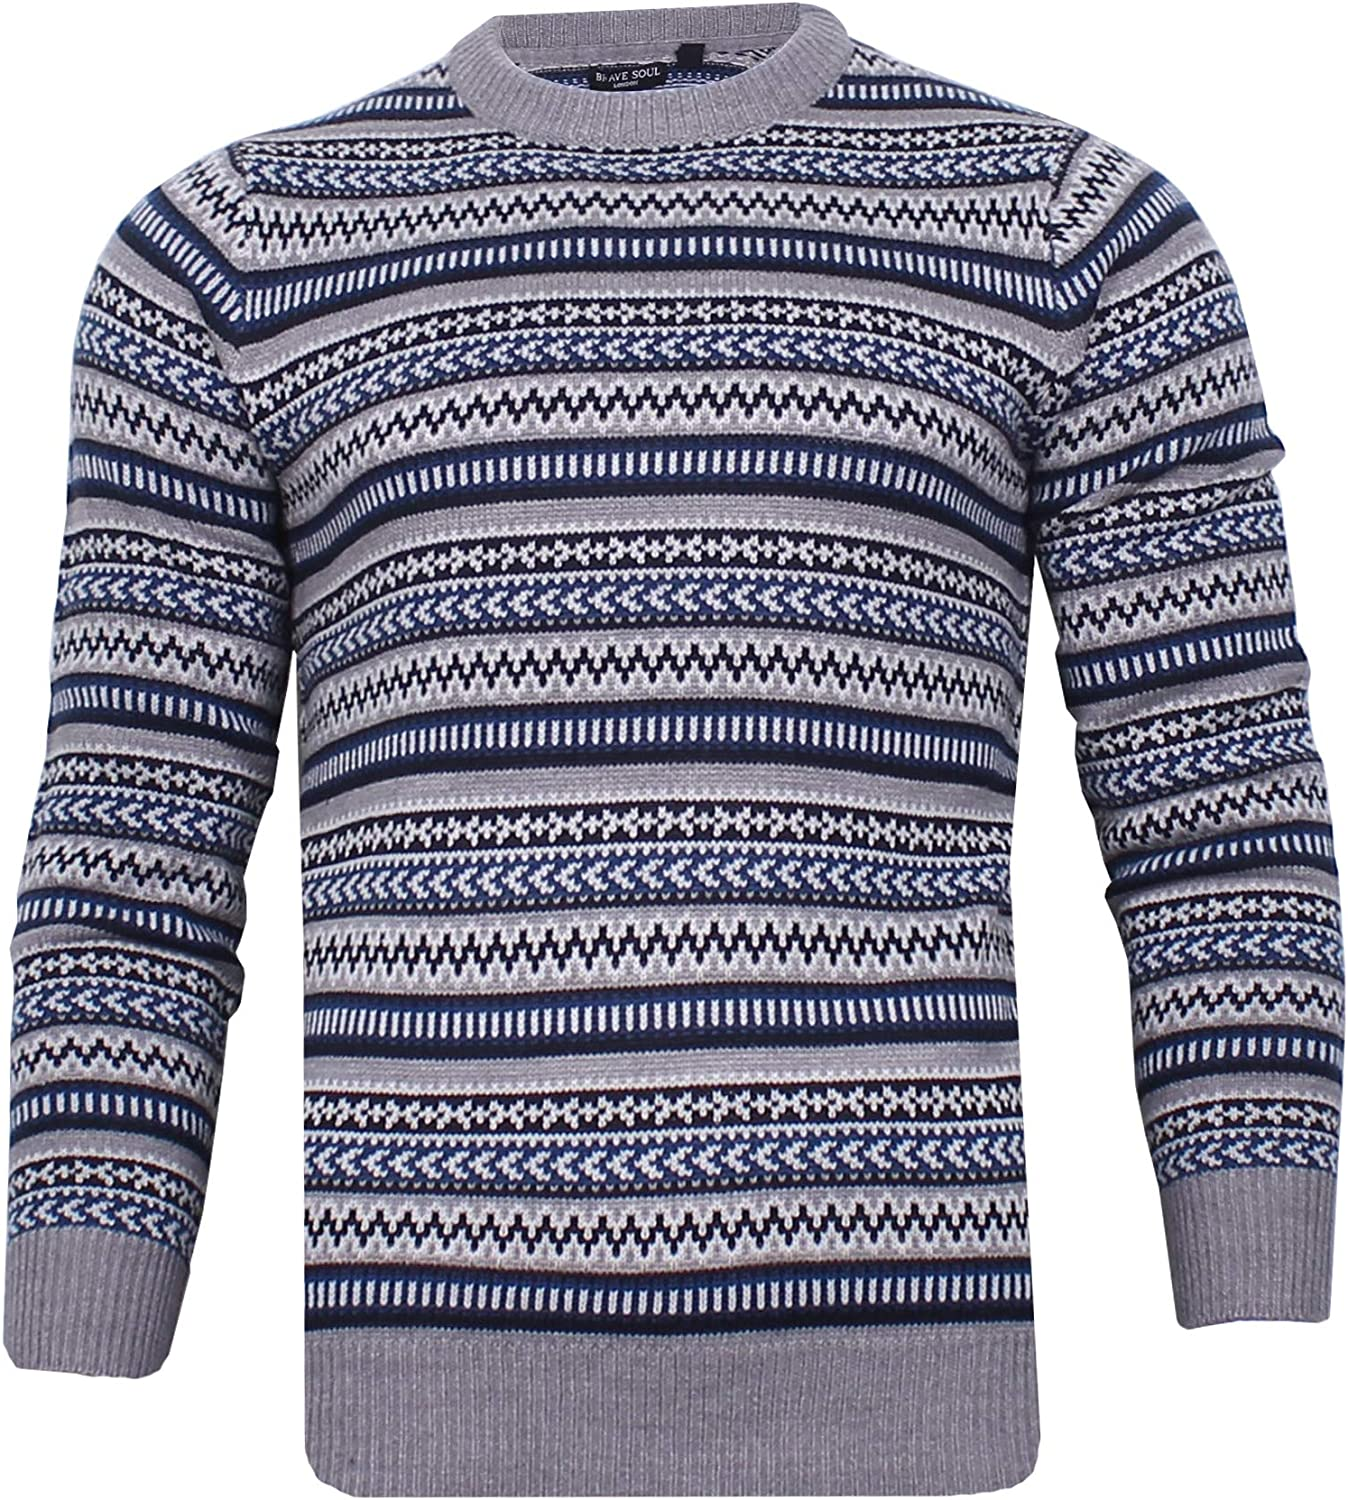 1940s UK and Europe Men's Clothing – WW2, Swing Dance, Goodwin BRAVE SOUL Mens Knitted Fairisle Jumper Christmas Crew Neck Winter Knitwear £17.99 AT vintagedancer.com